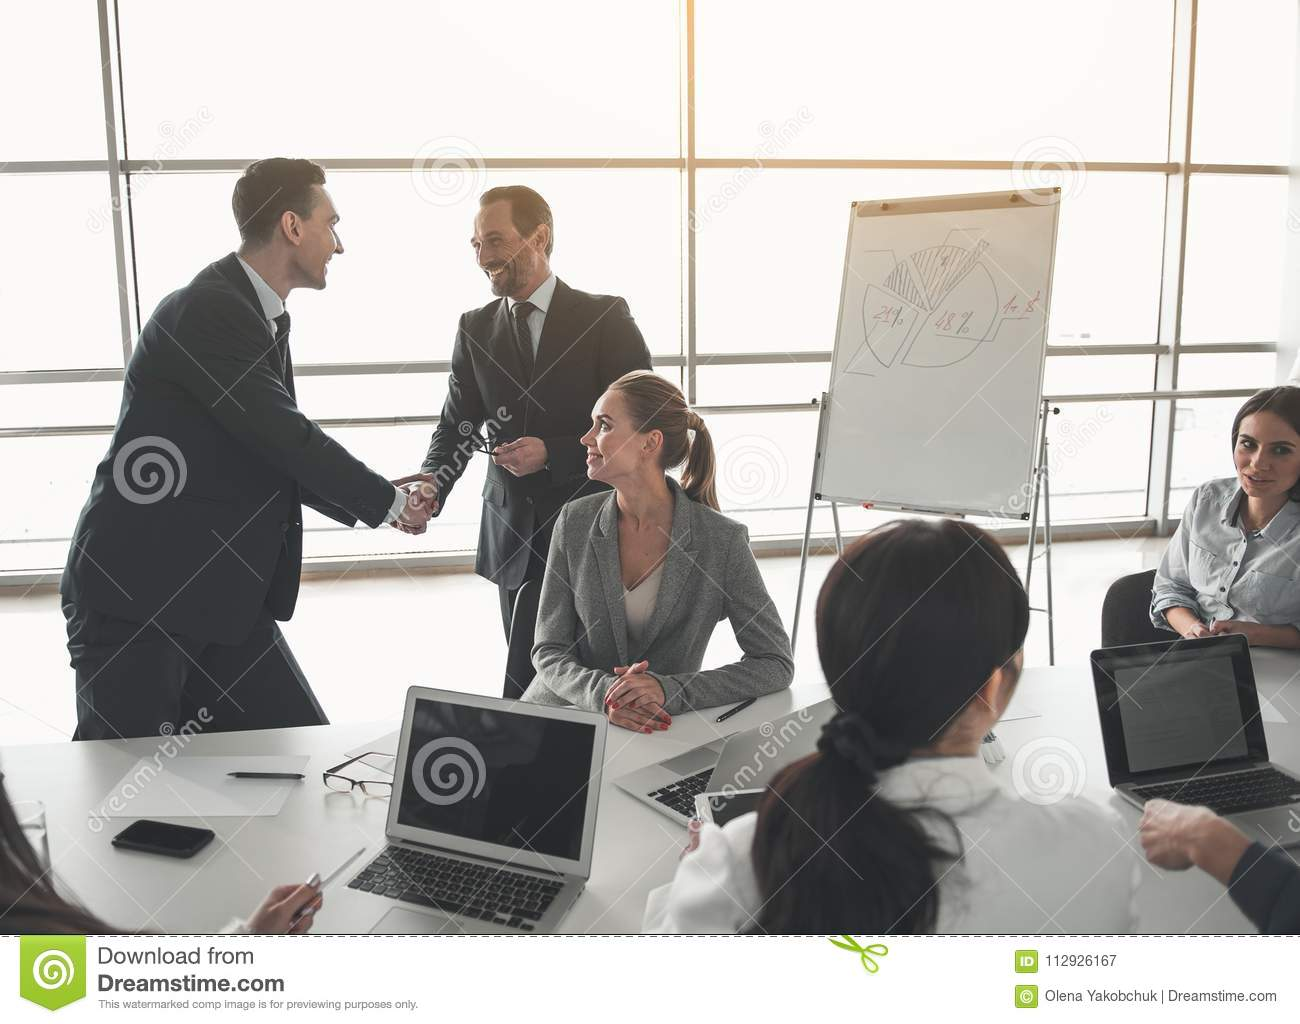 Boss thanking the employee for good results stock image image of download boss thanking the employee for good results stock image image of greet analyze m4hsunfo